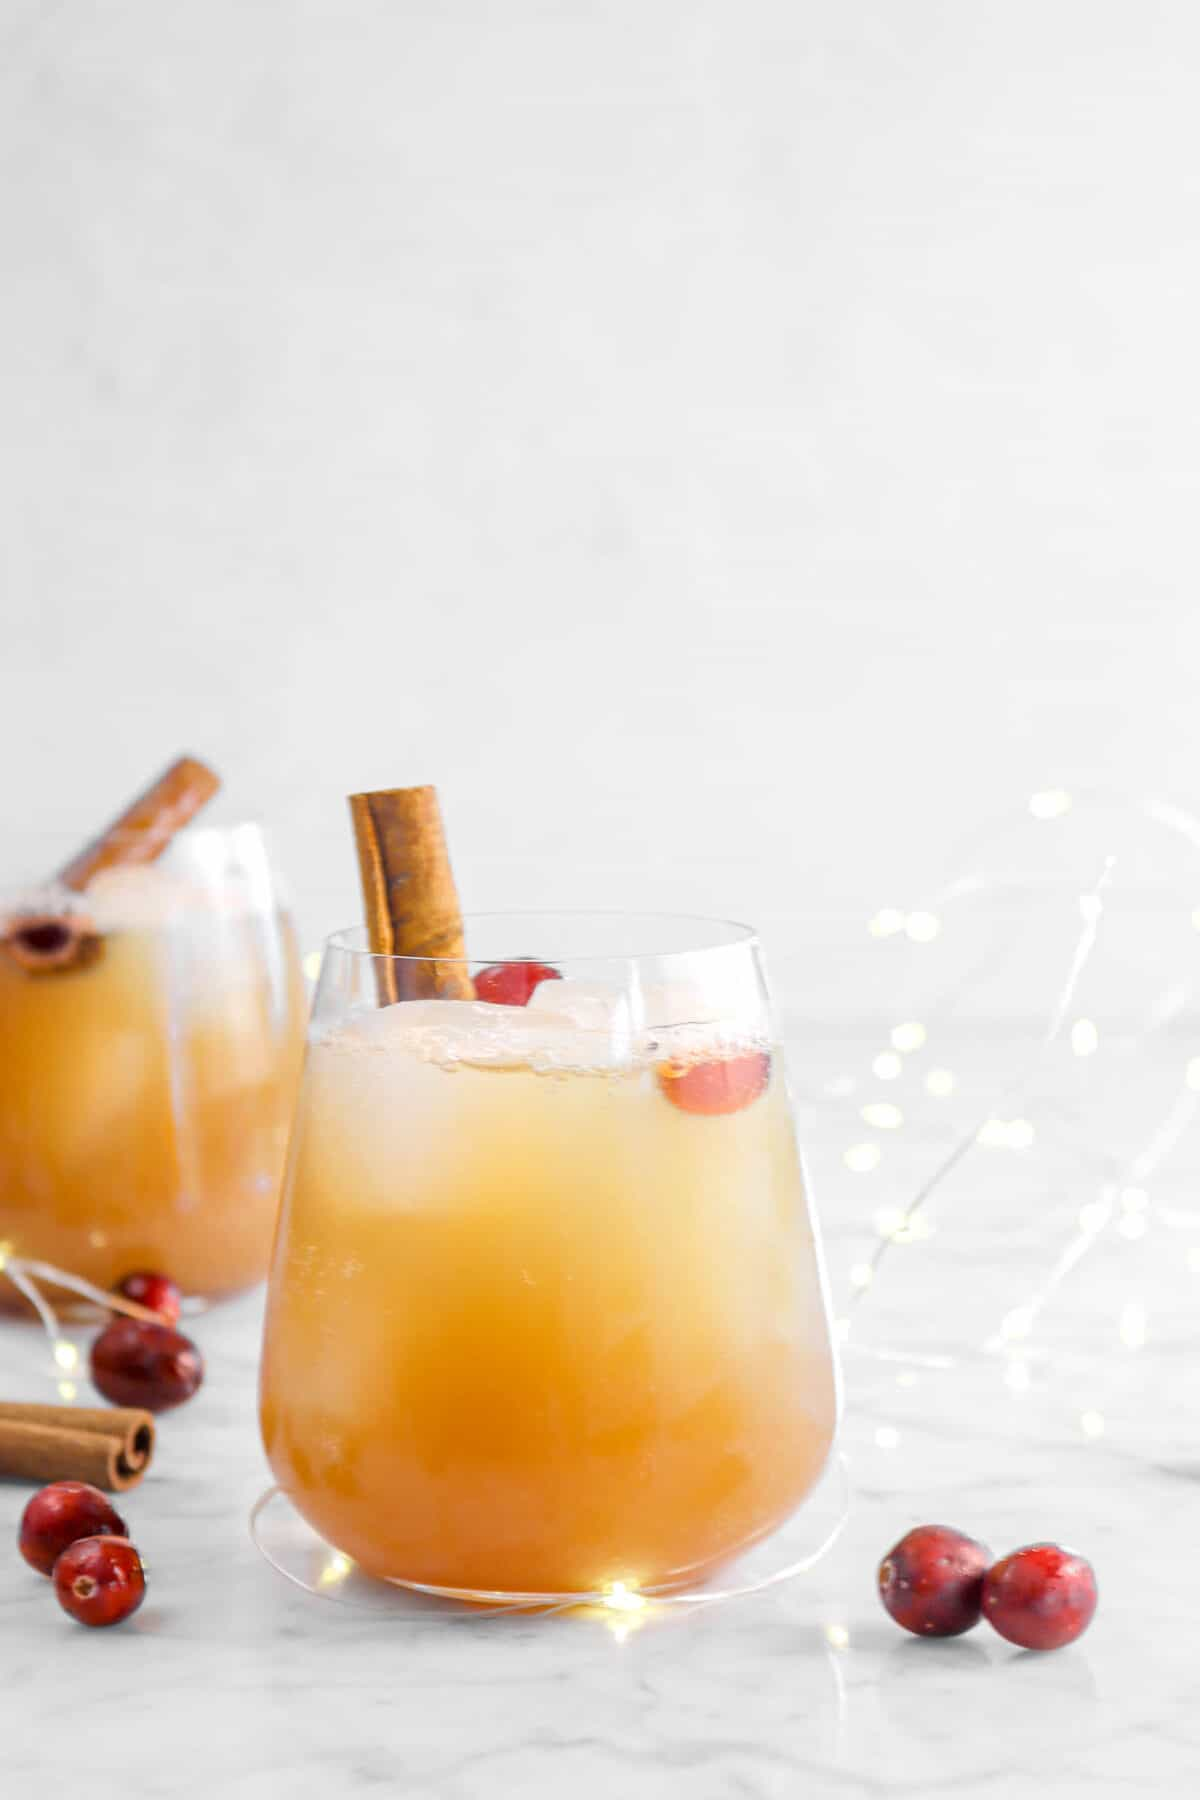 two glasses of cider with cinnamon stick and cranberries